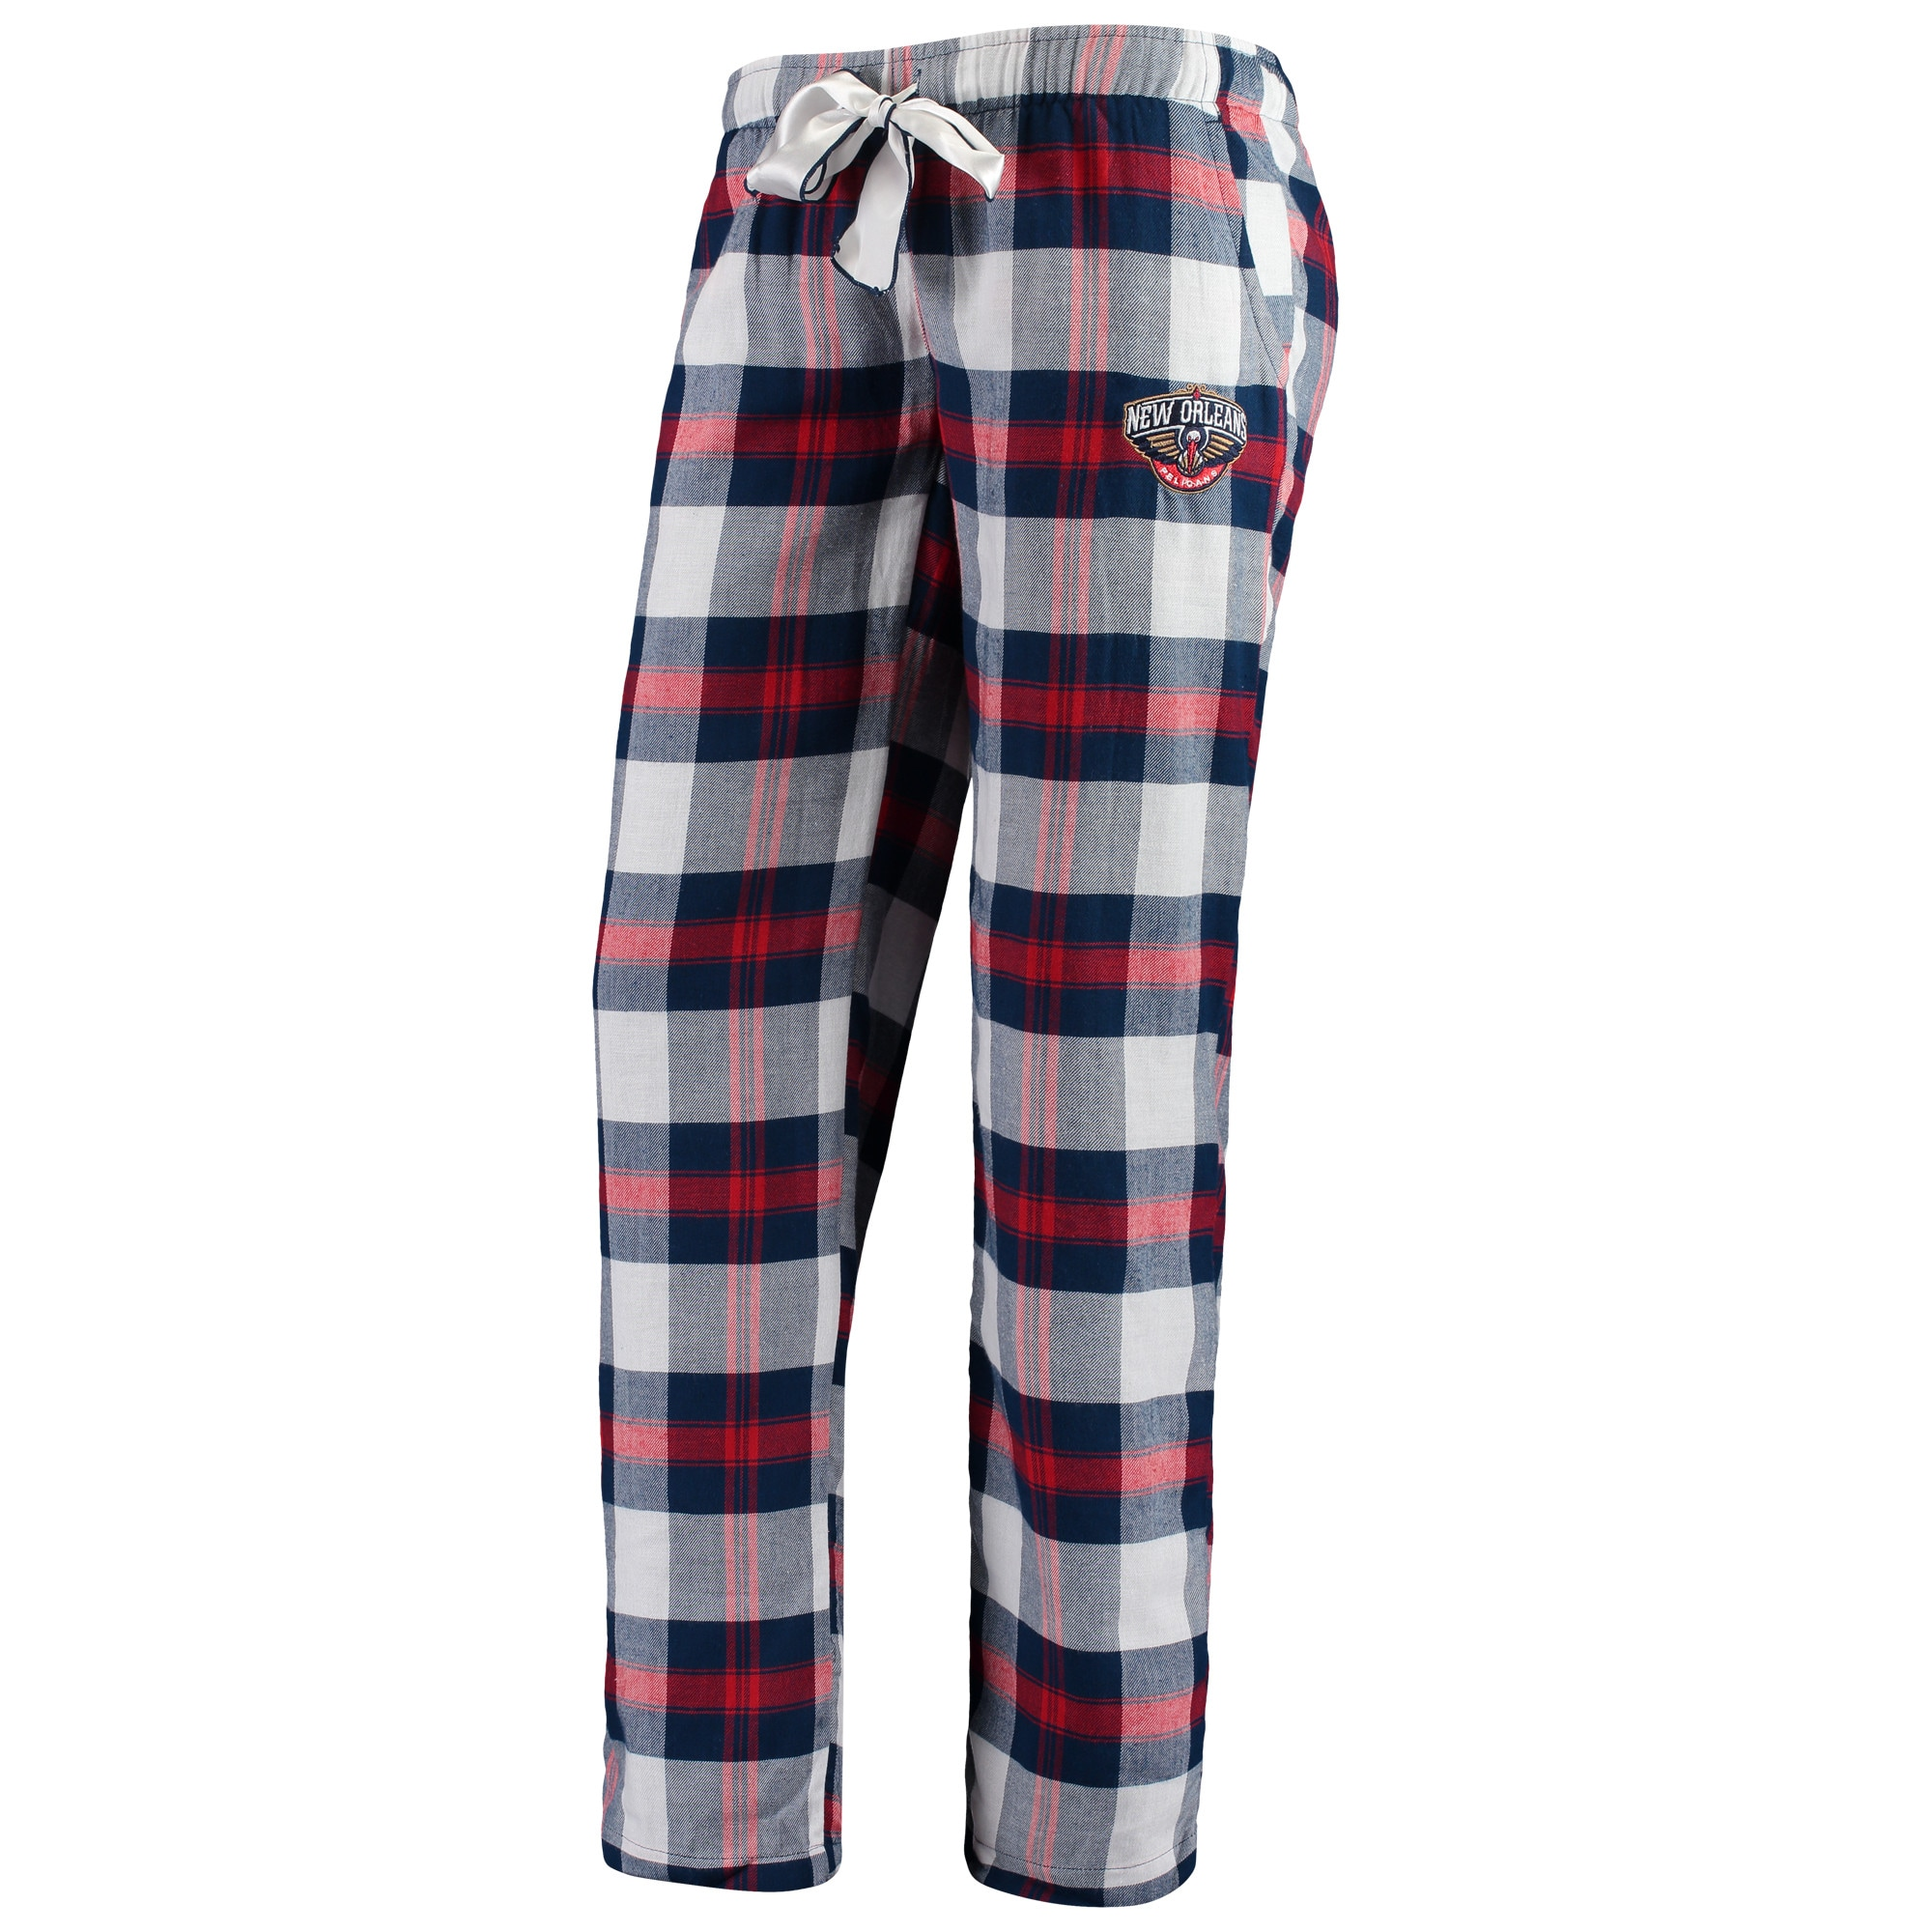 New Orleans Pelicans Concepts Sport Women's Headway Flannel Pants - Navy/Red